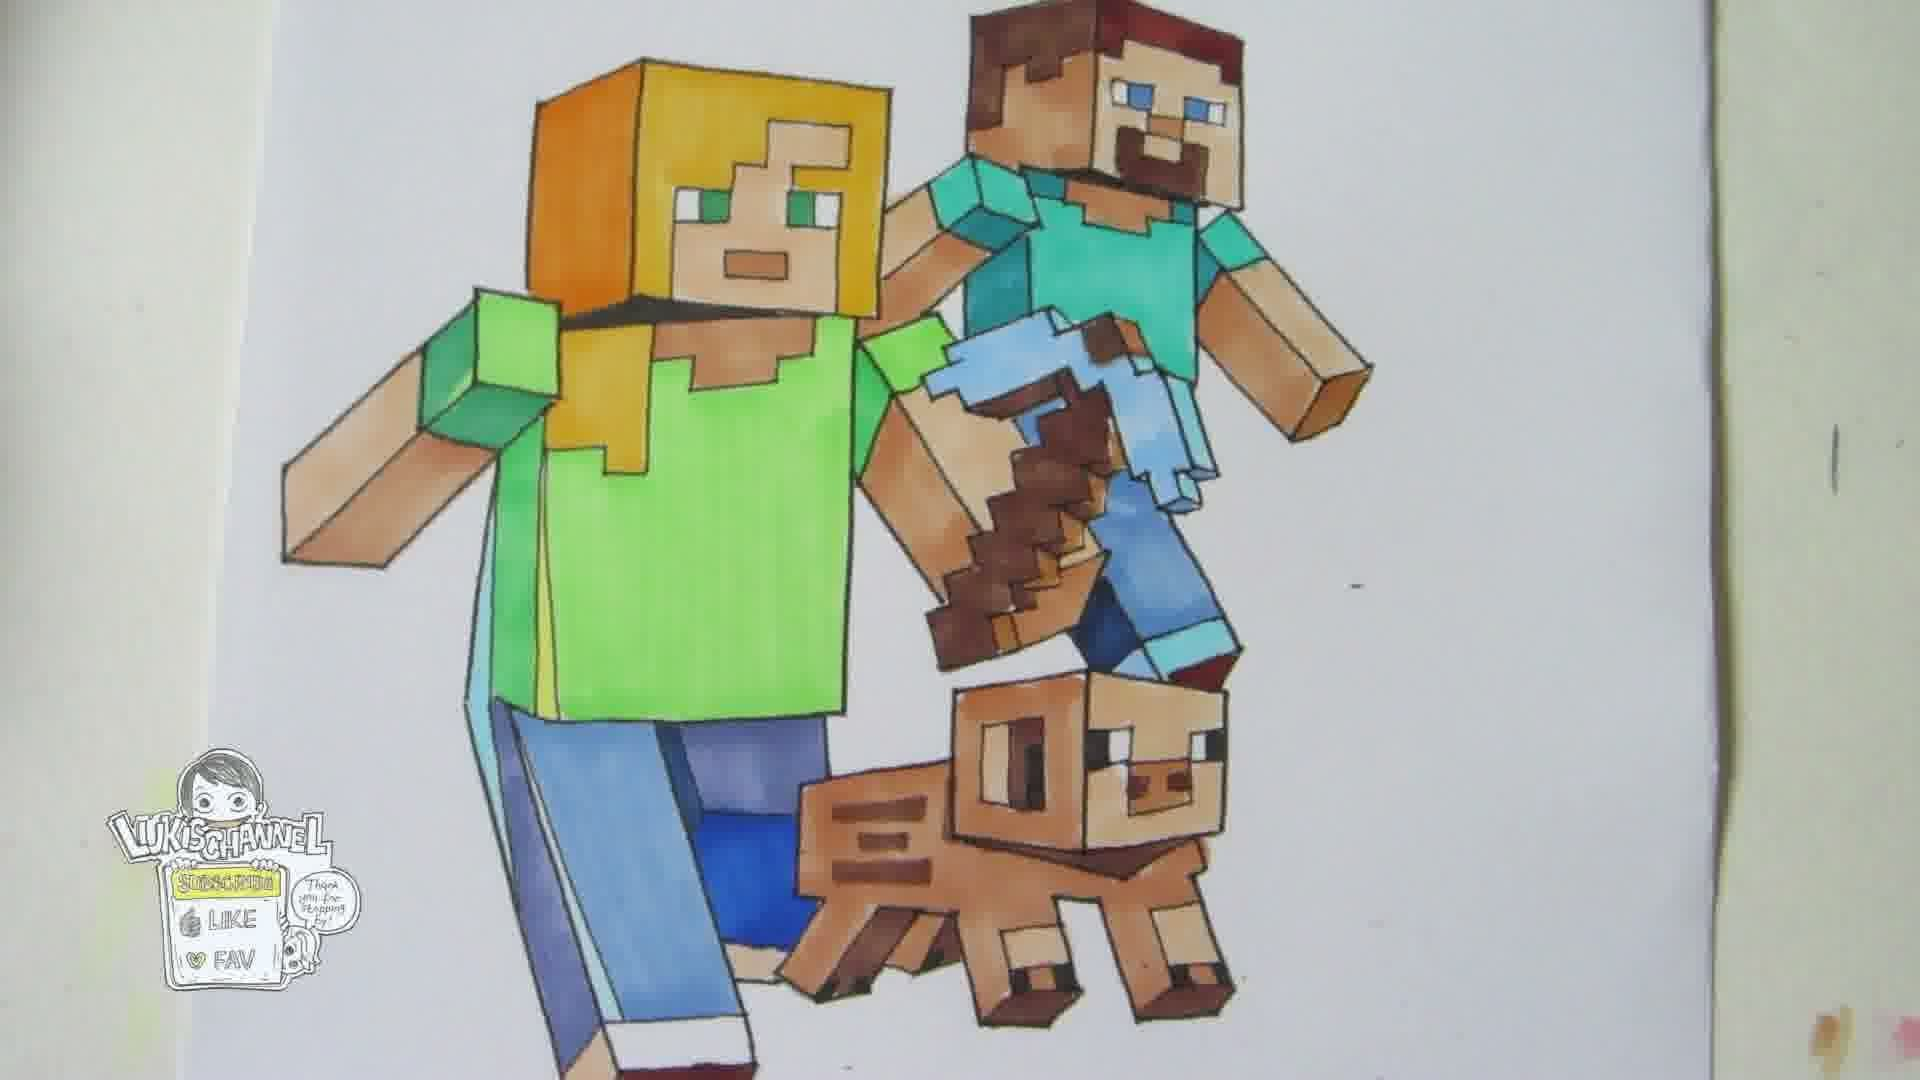 Drawn minecraft minecraft character To ruler!) ruler!) draw characters